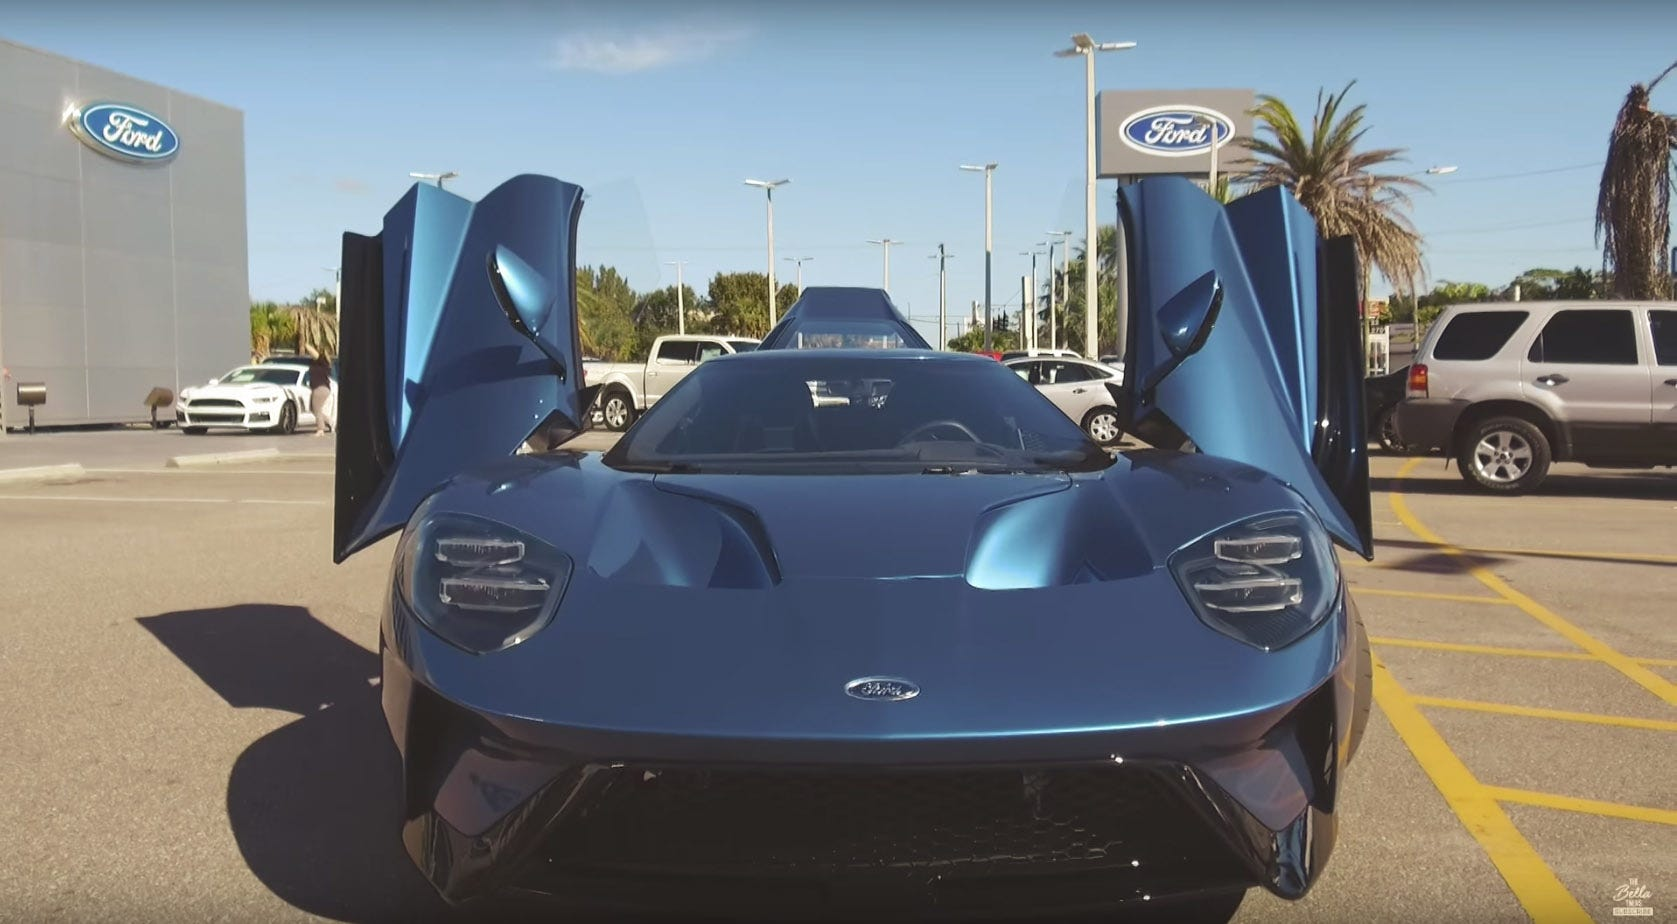 On Nov. 3, Ford offered to buy back the Liquid Blue